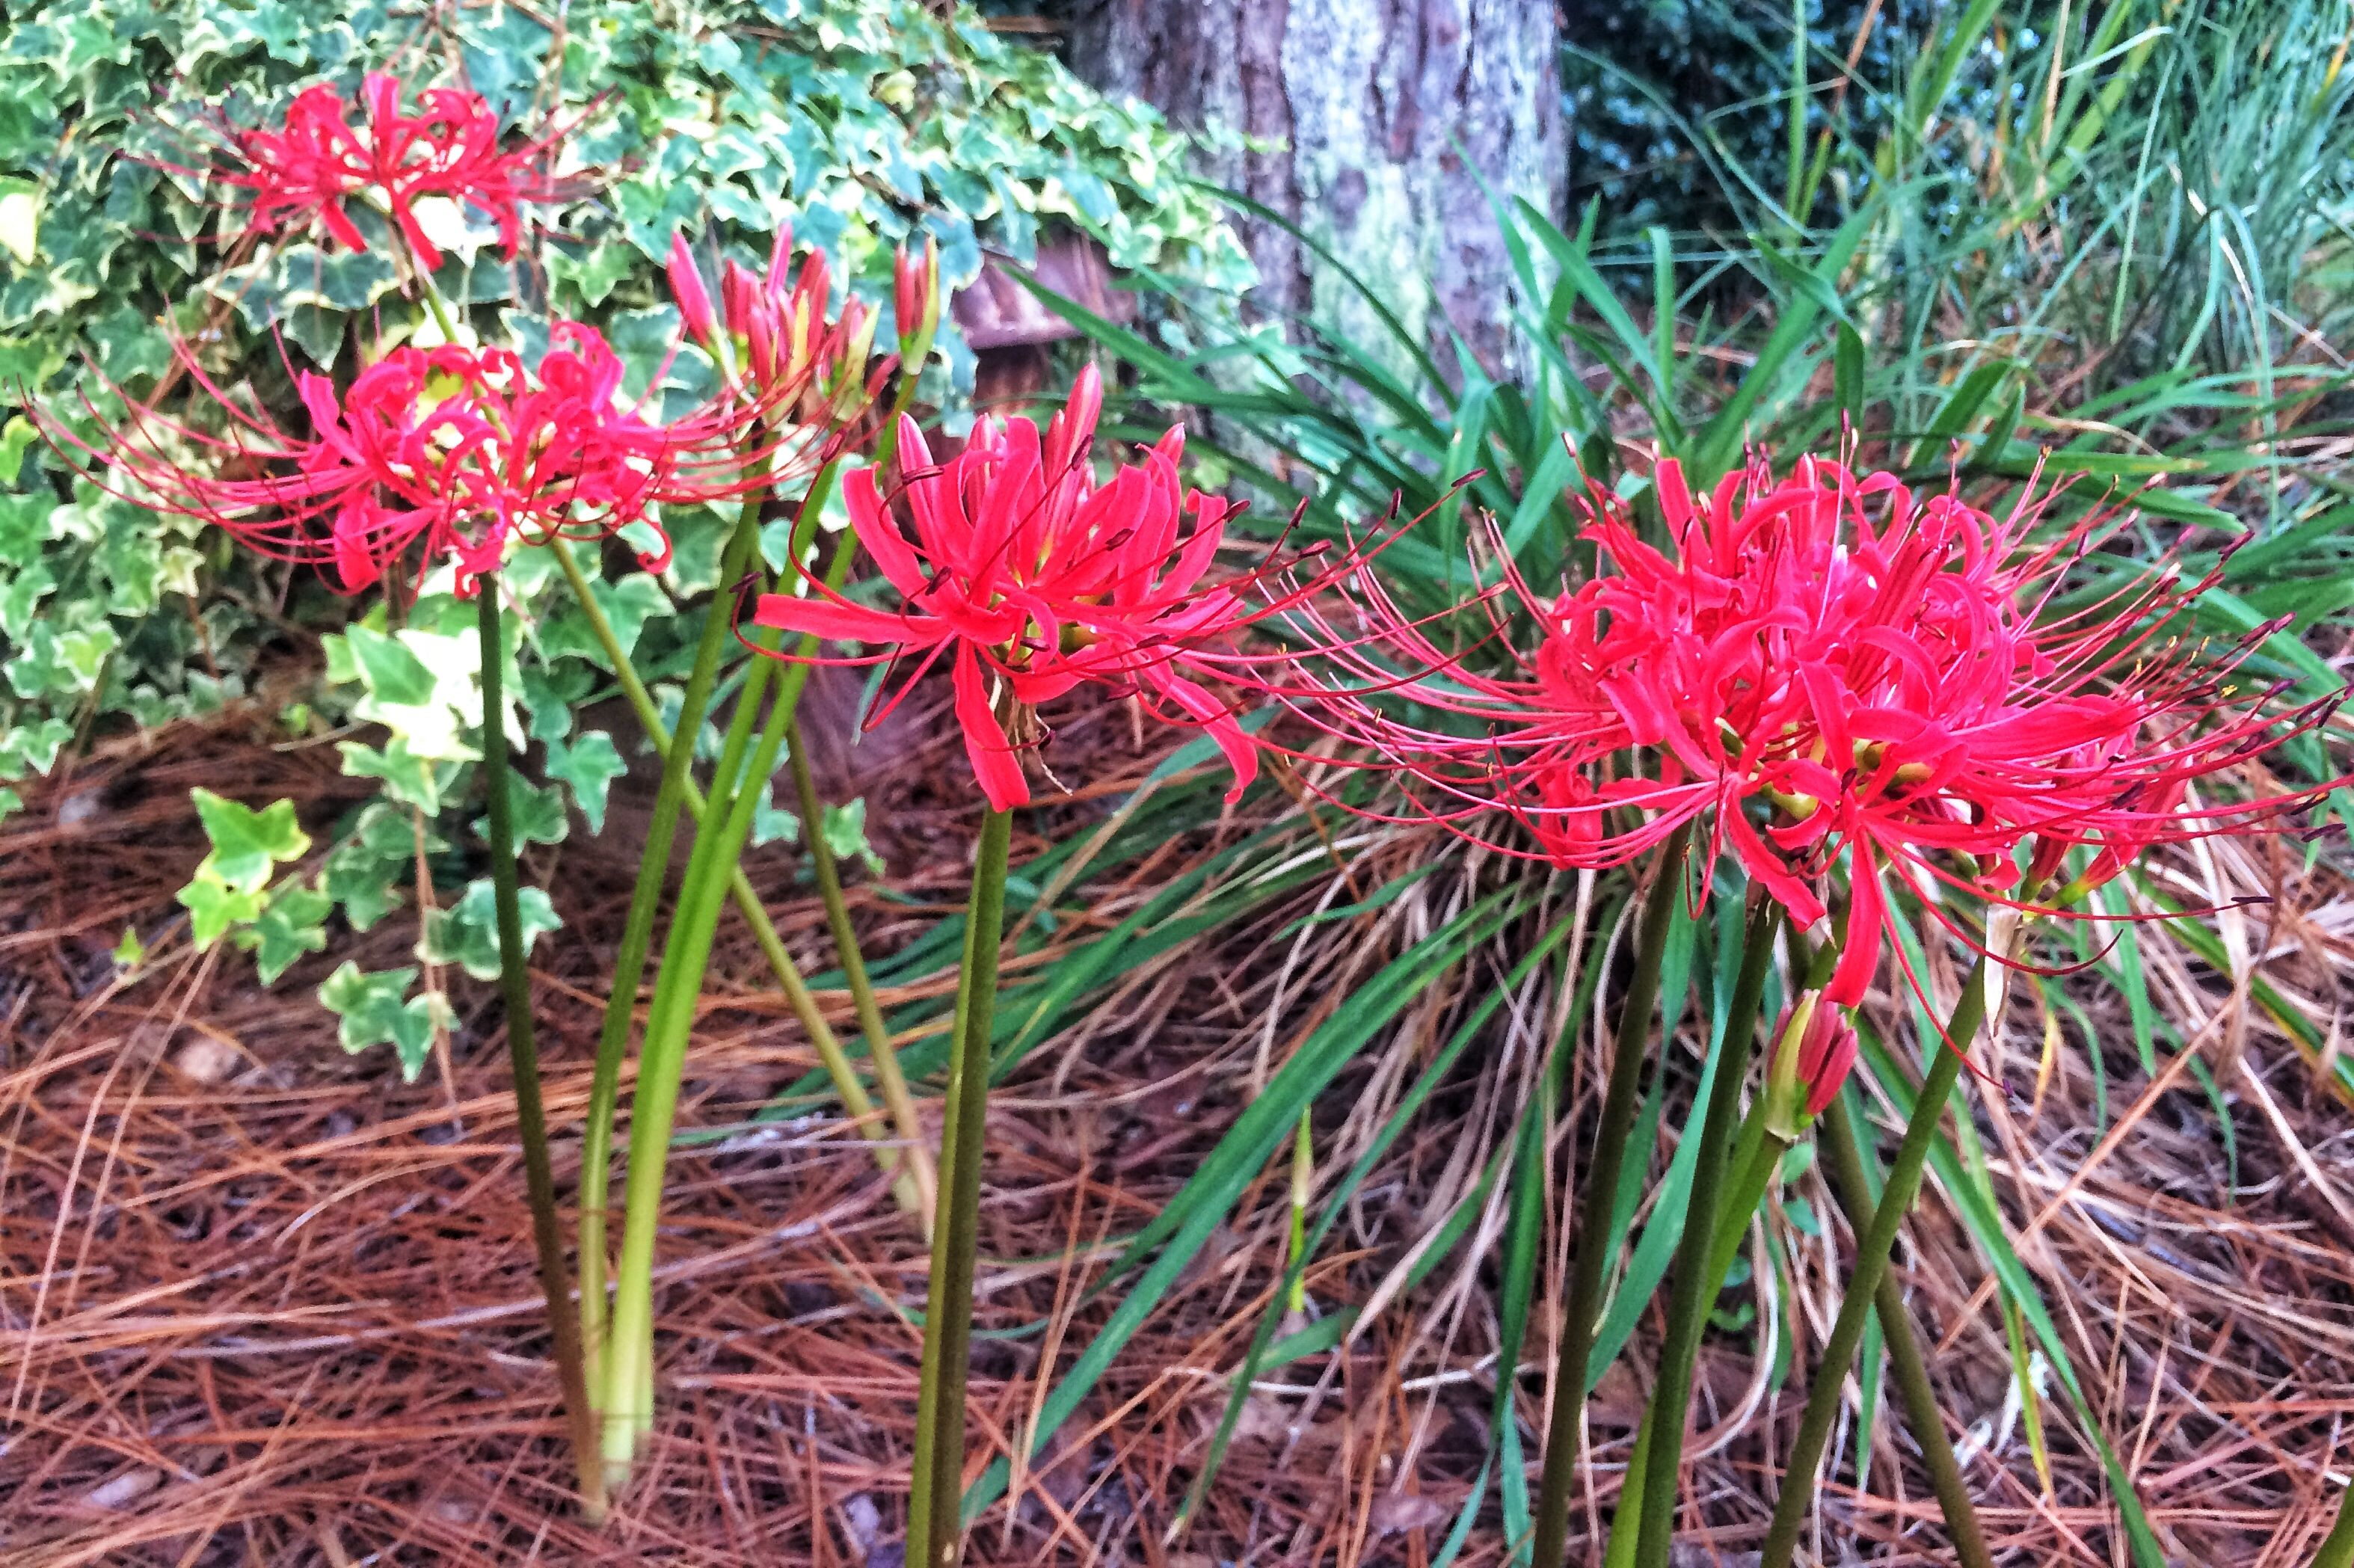 Spider Lilies in Early September? Sorcery!